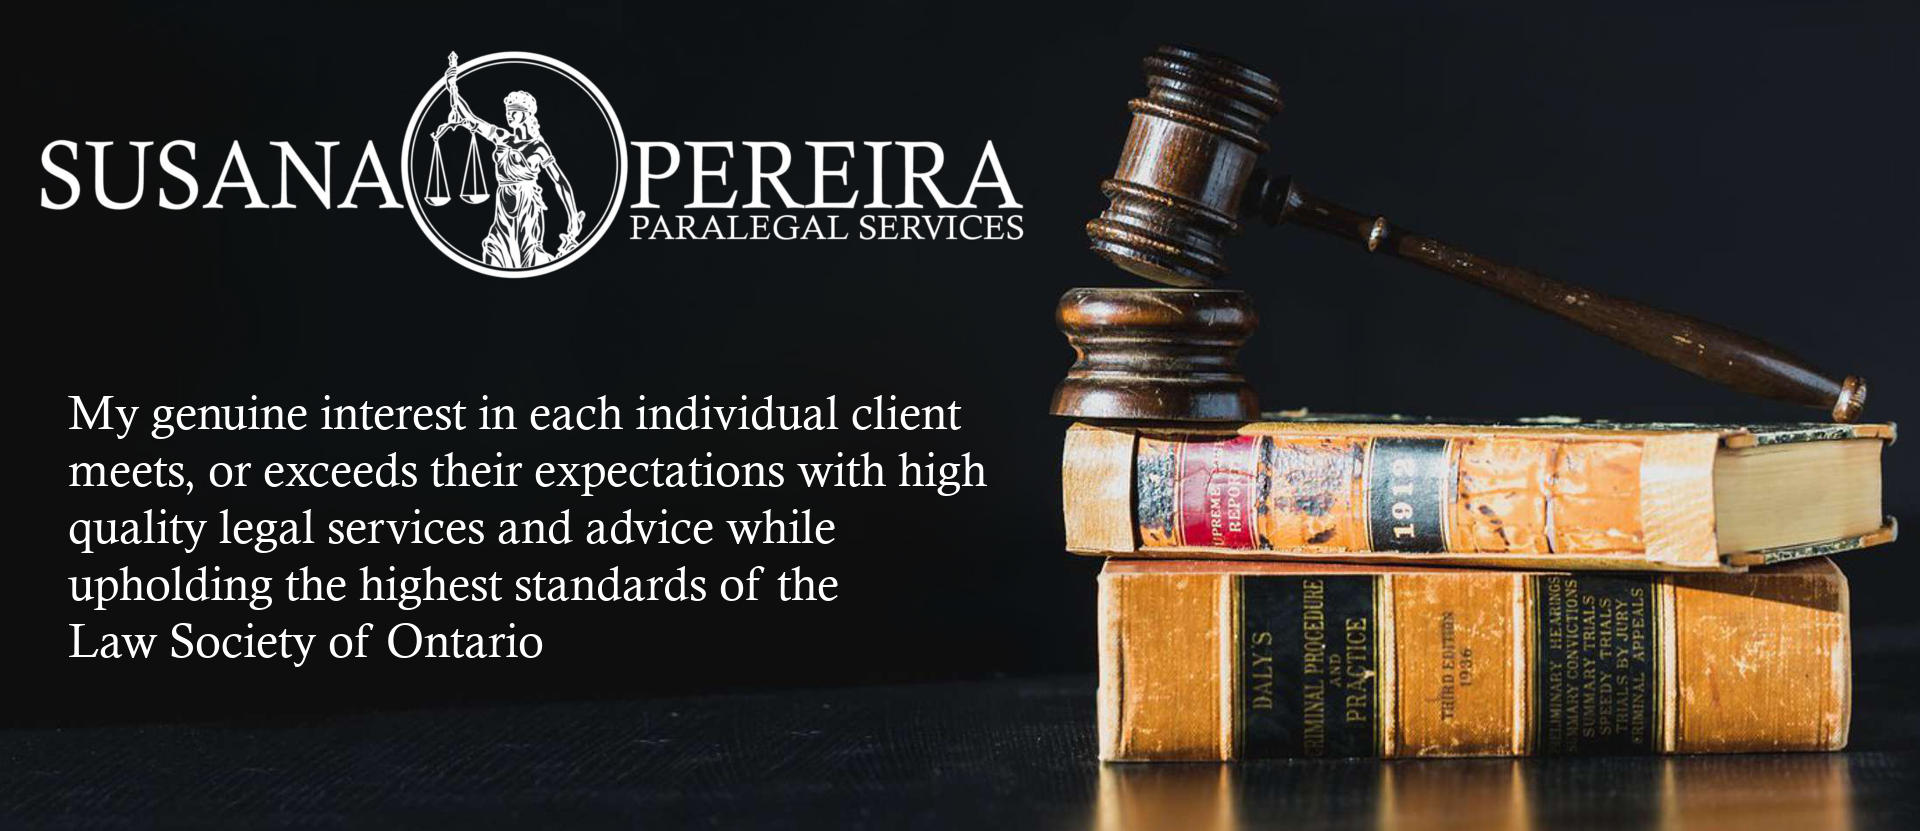 my genuine interest in each individual client meets, or exceeds their expectations with high quality legal services and advice while upholding the highest standards of the Law Society of Ontario